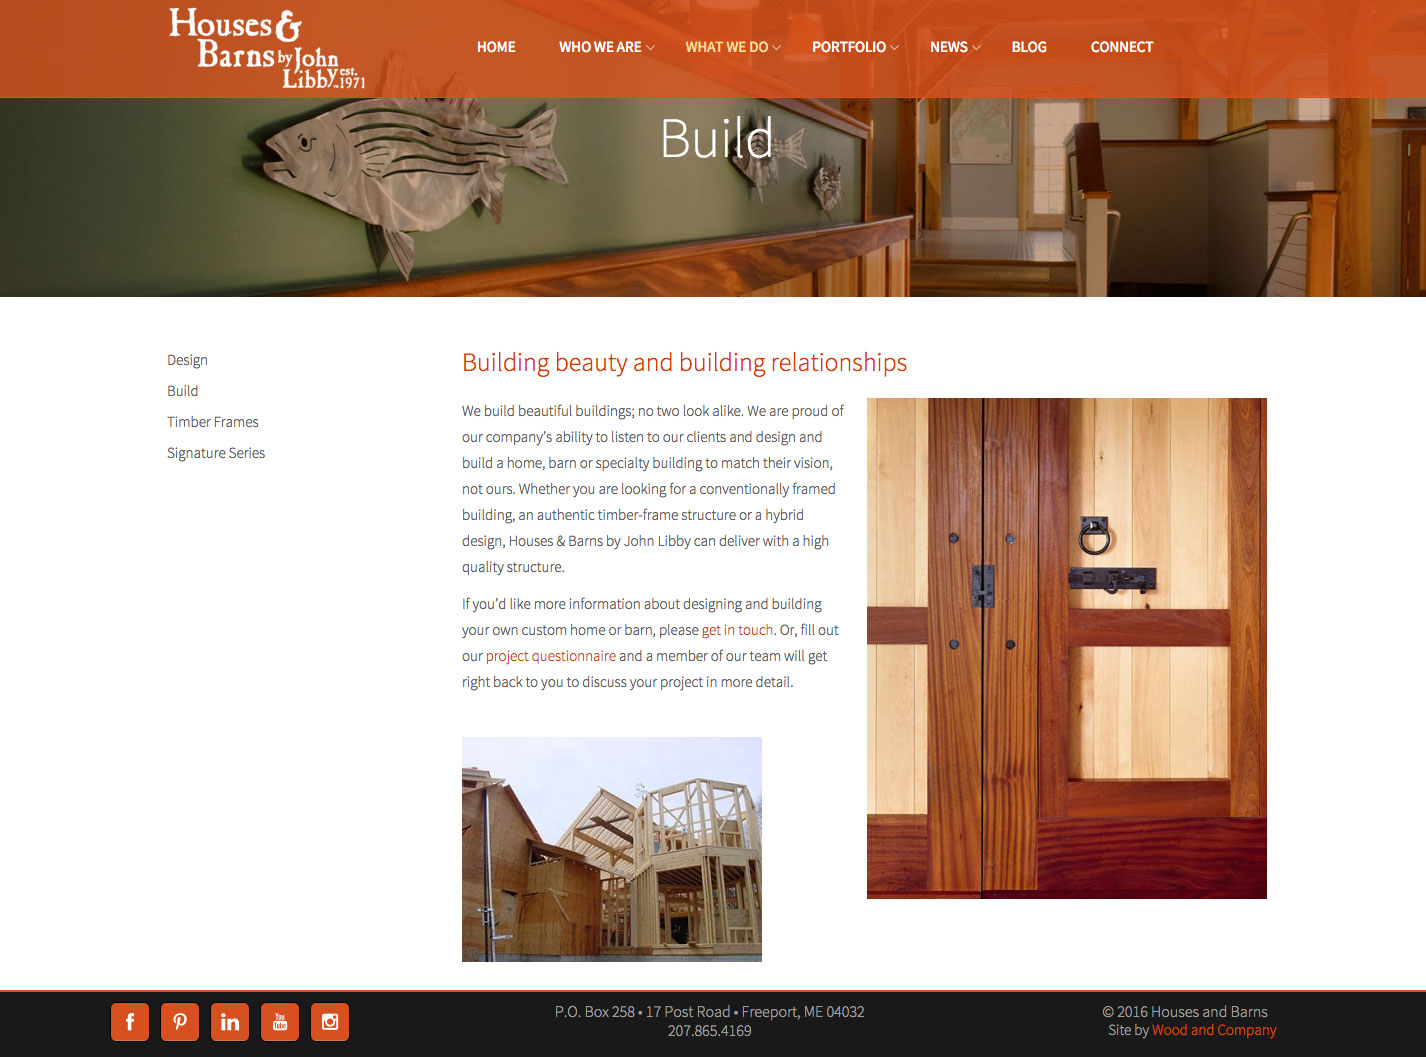 Houses & Barns website building services